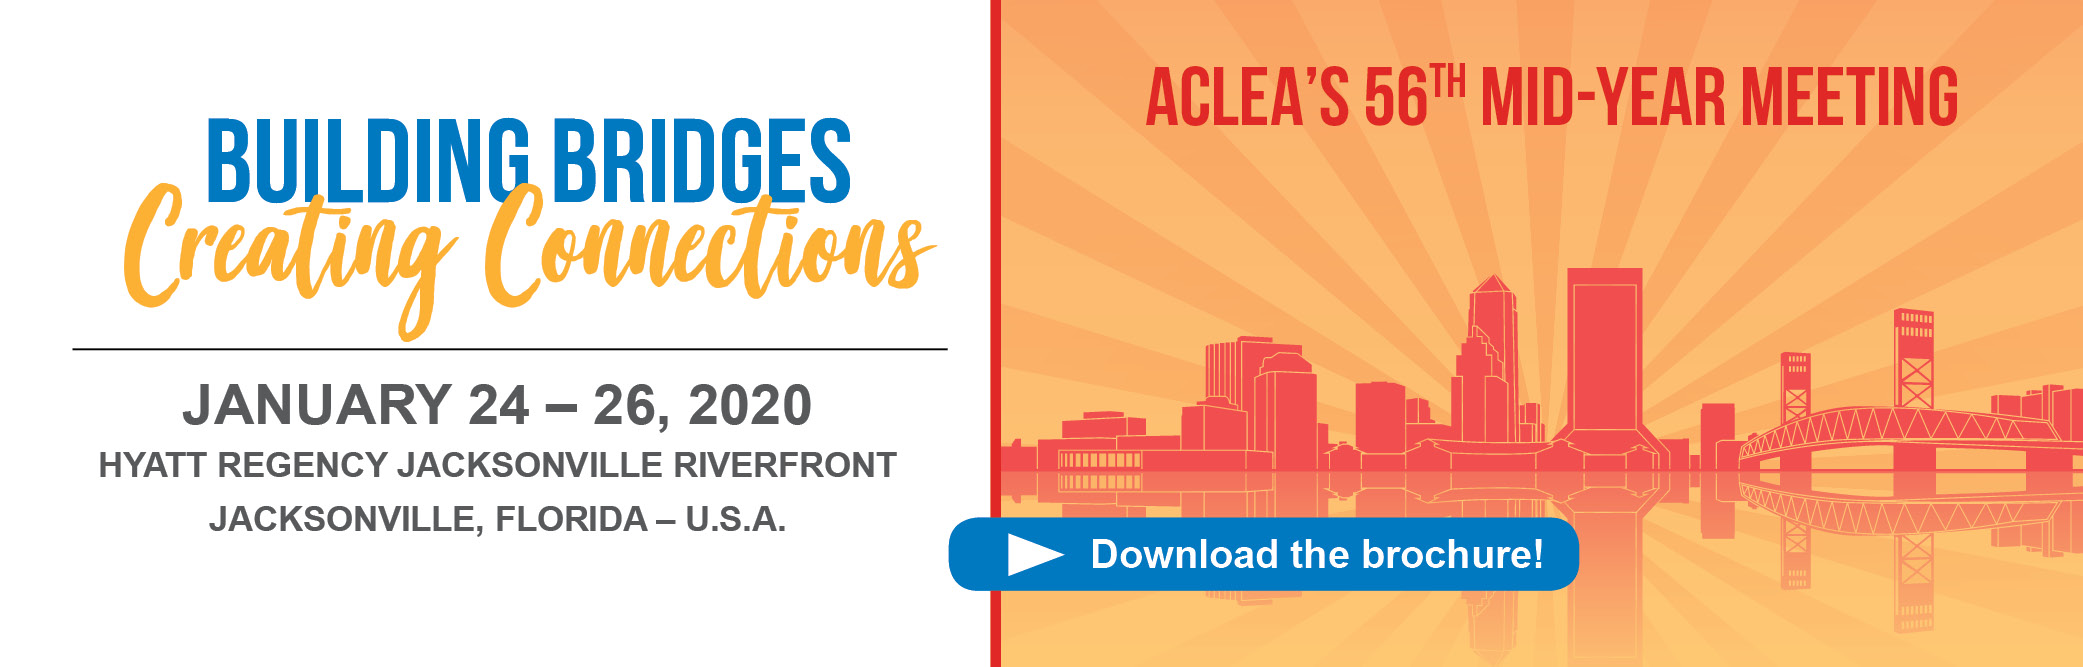 ACLEA's Mid-Year Meeting in Jacksonville, Florida